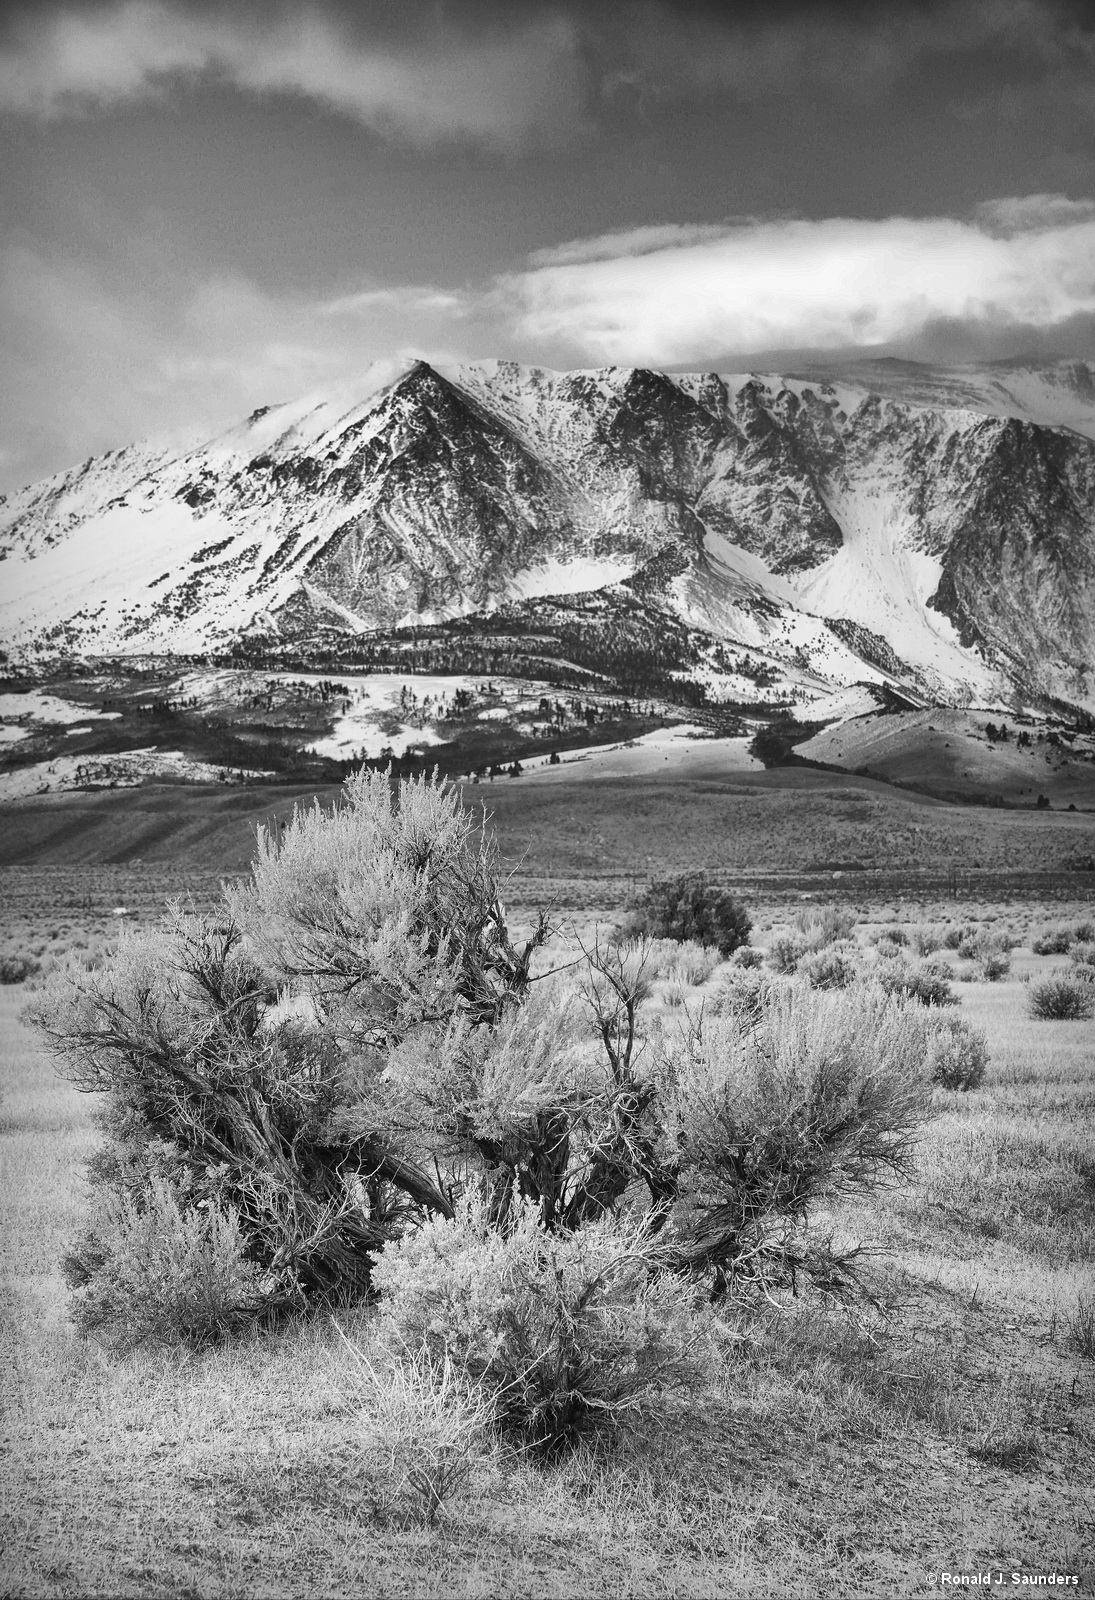 Mt Gibbs, ansel, adams, sexton, cramer, sierra, mountain, black, white, sage, pumice, photo